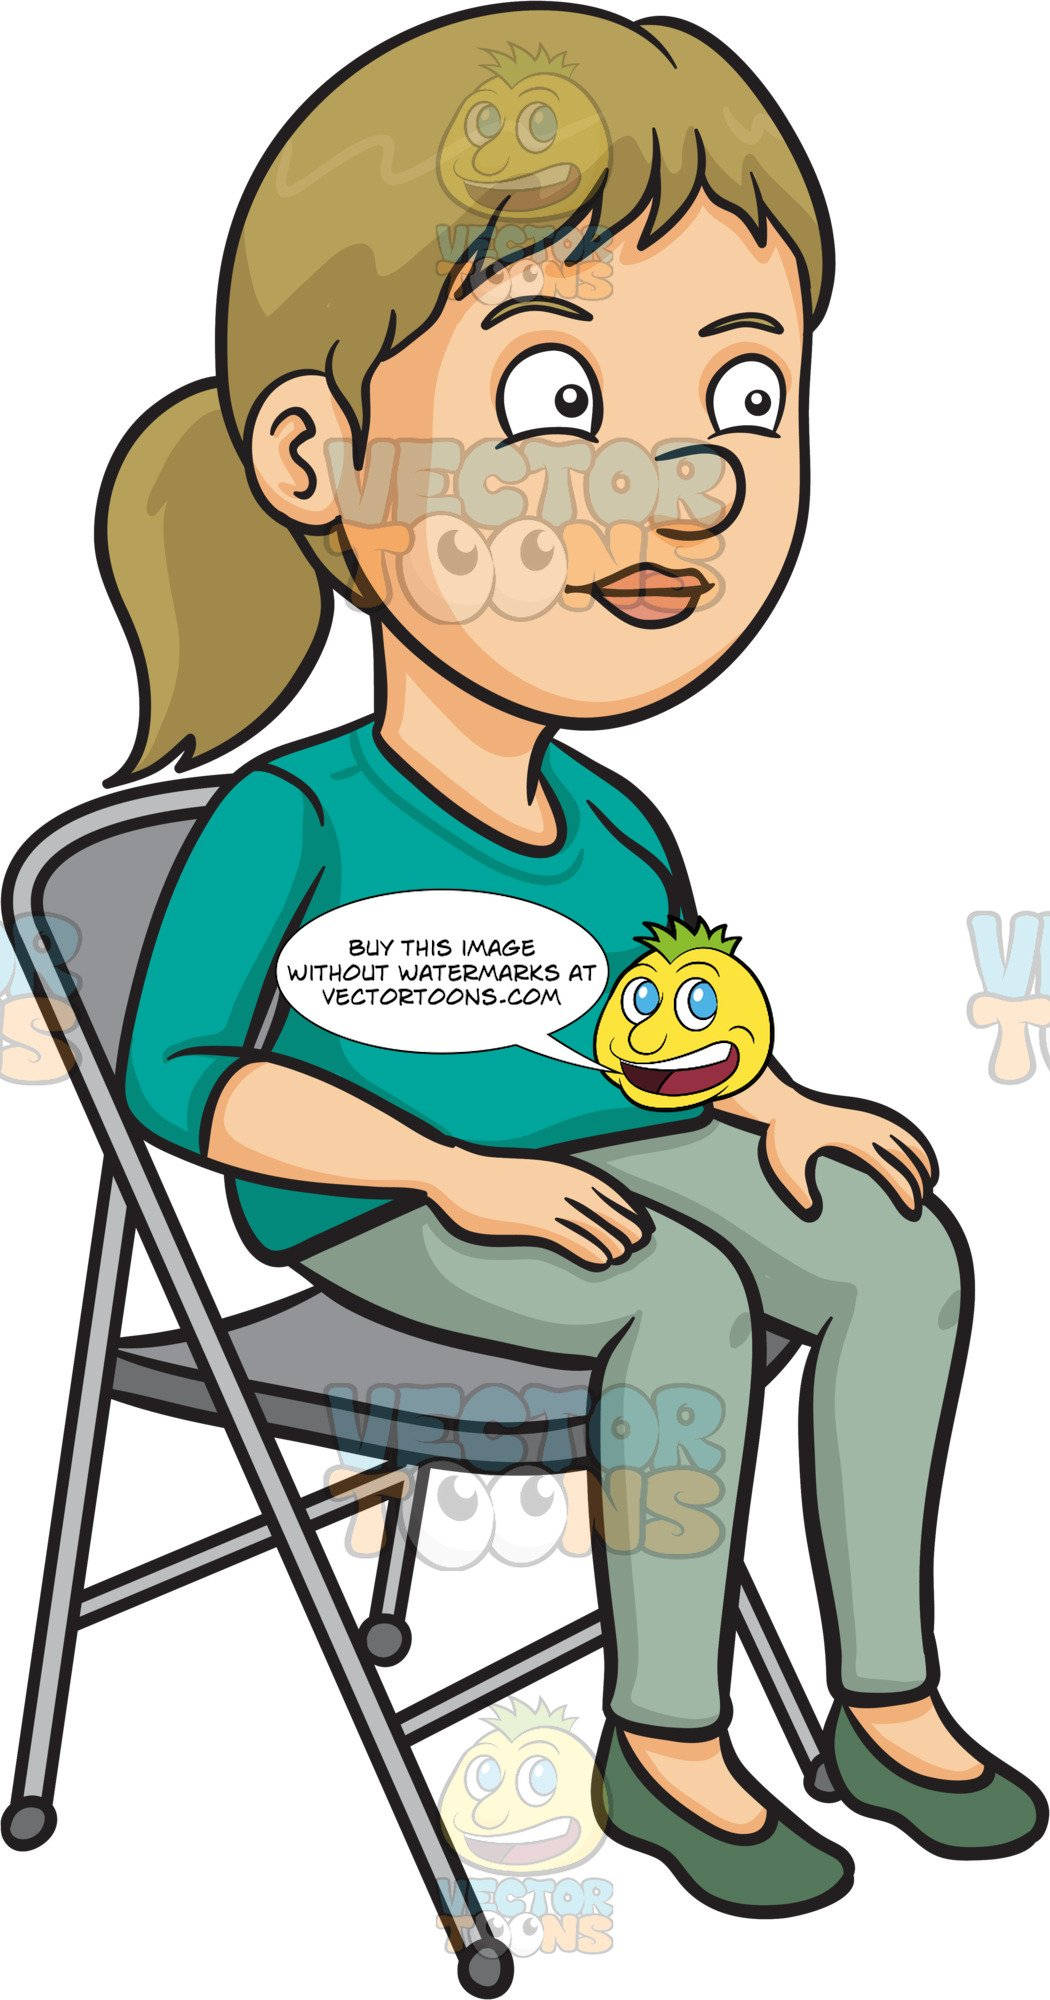 Sitting in chair clipart banner freeuse download A Woman Sitting On A Folding Chair banner freeuse download